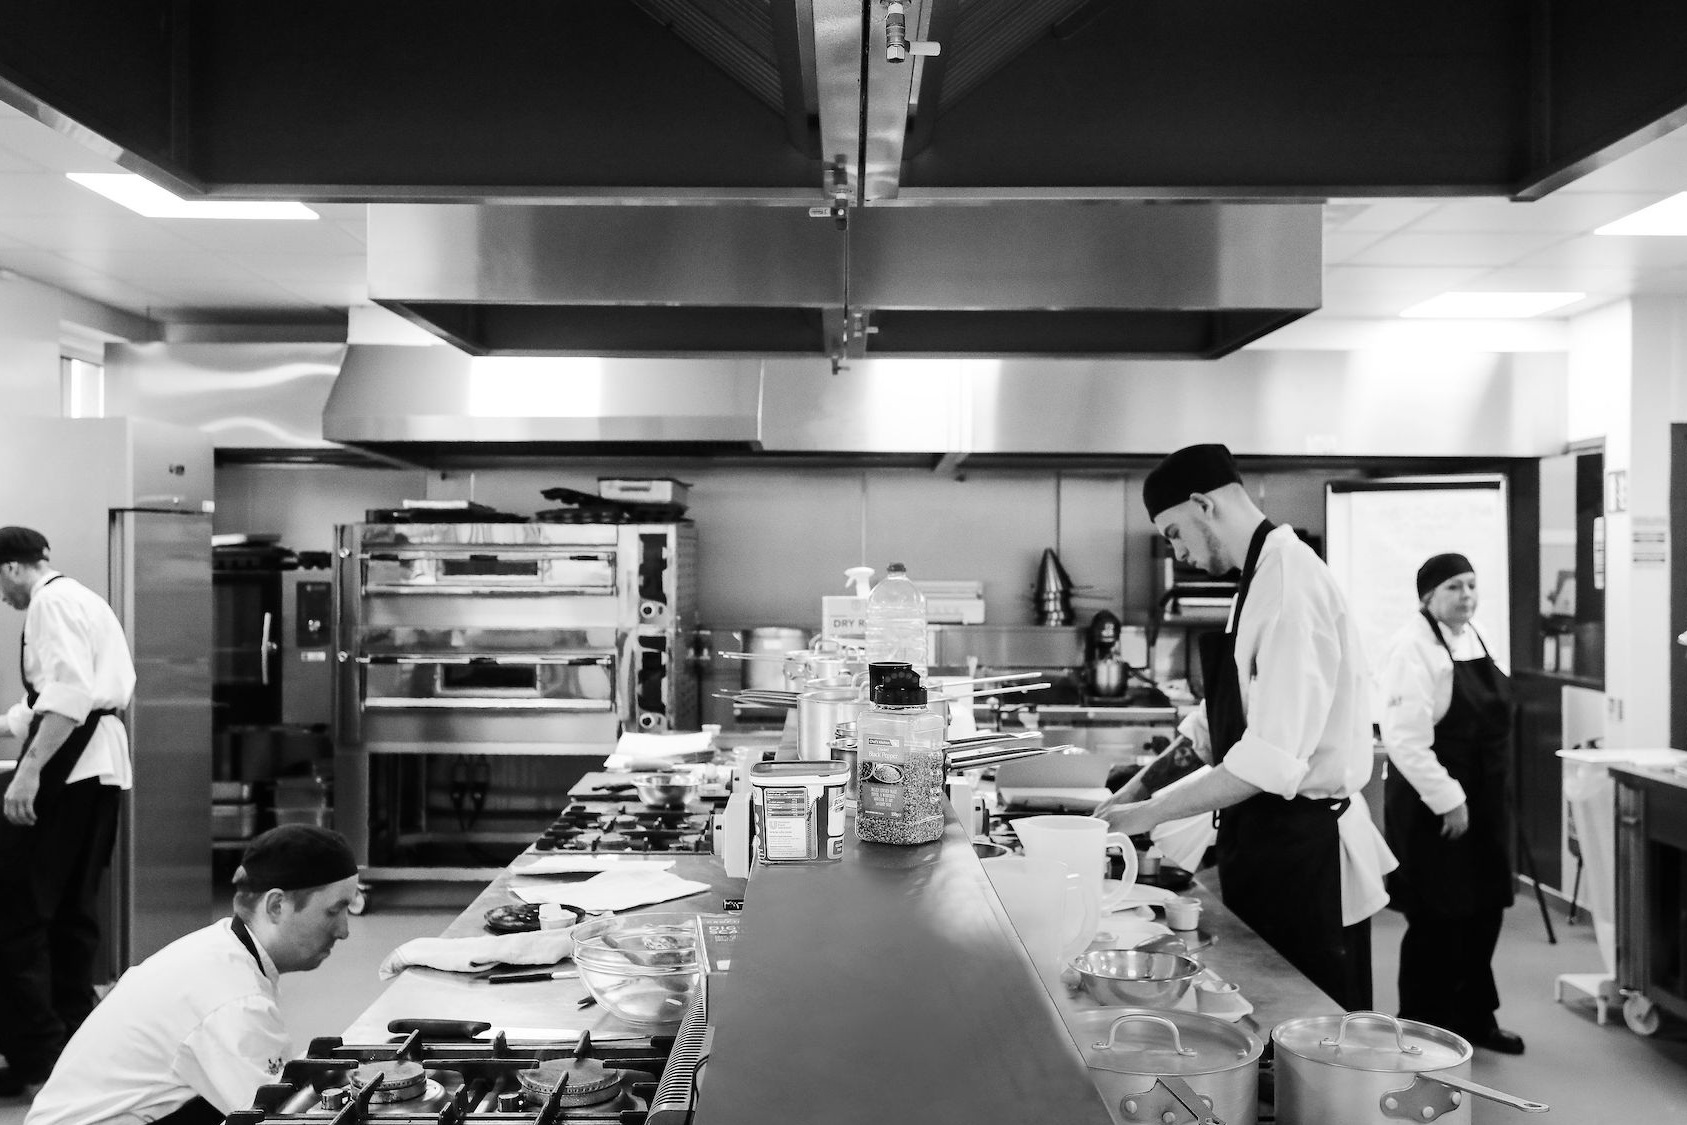 Two industry standard kitchens - (including a commercial pizza oven). They offer a realistic environment to train in. They are HACCP compliant & the professional equipment meets the special validation requirements to offer QQI level 3 - level 6 awards.